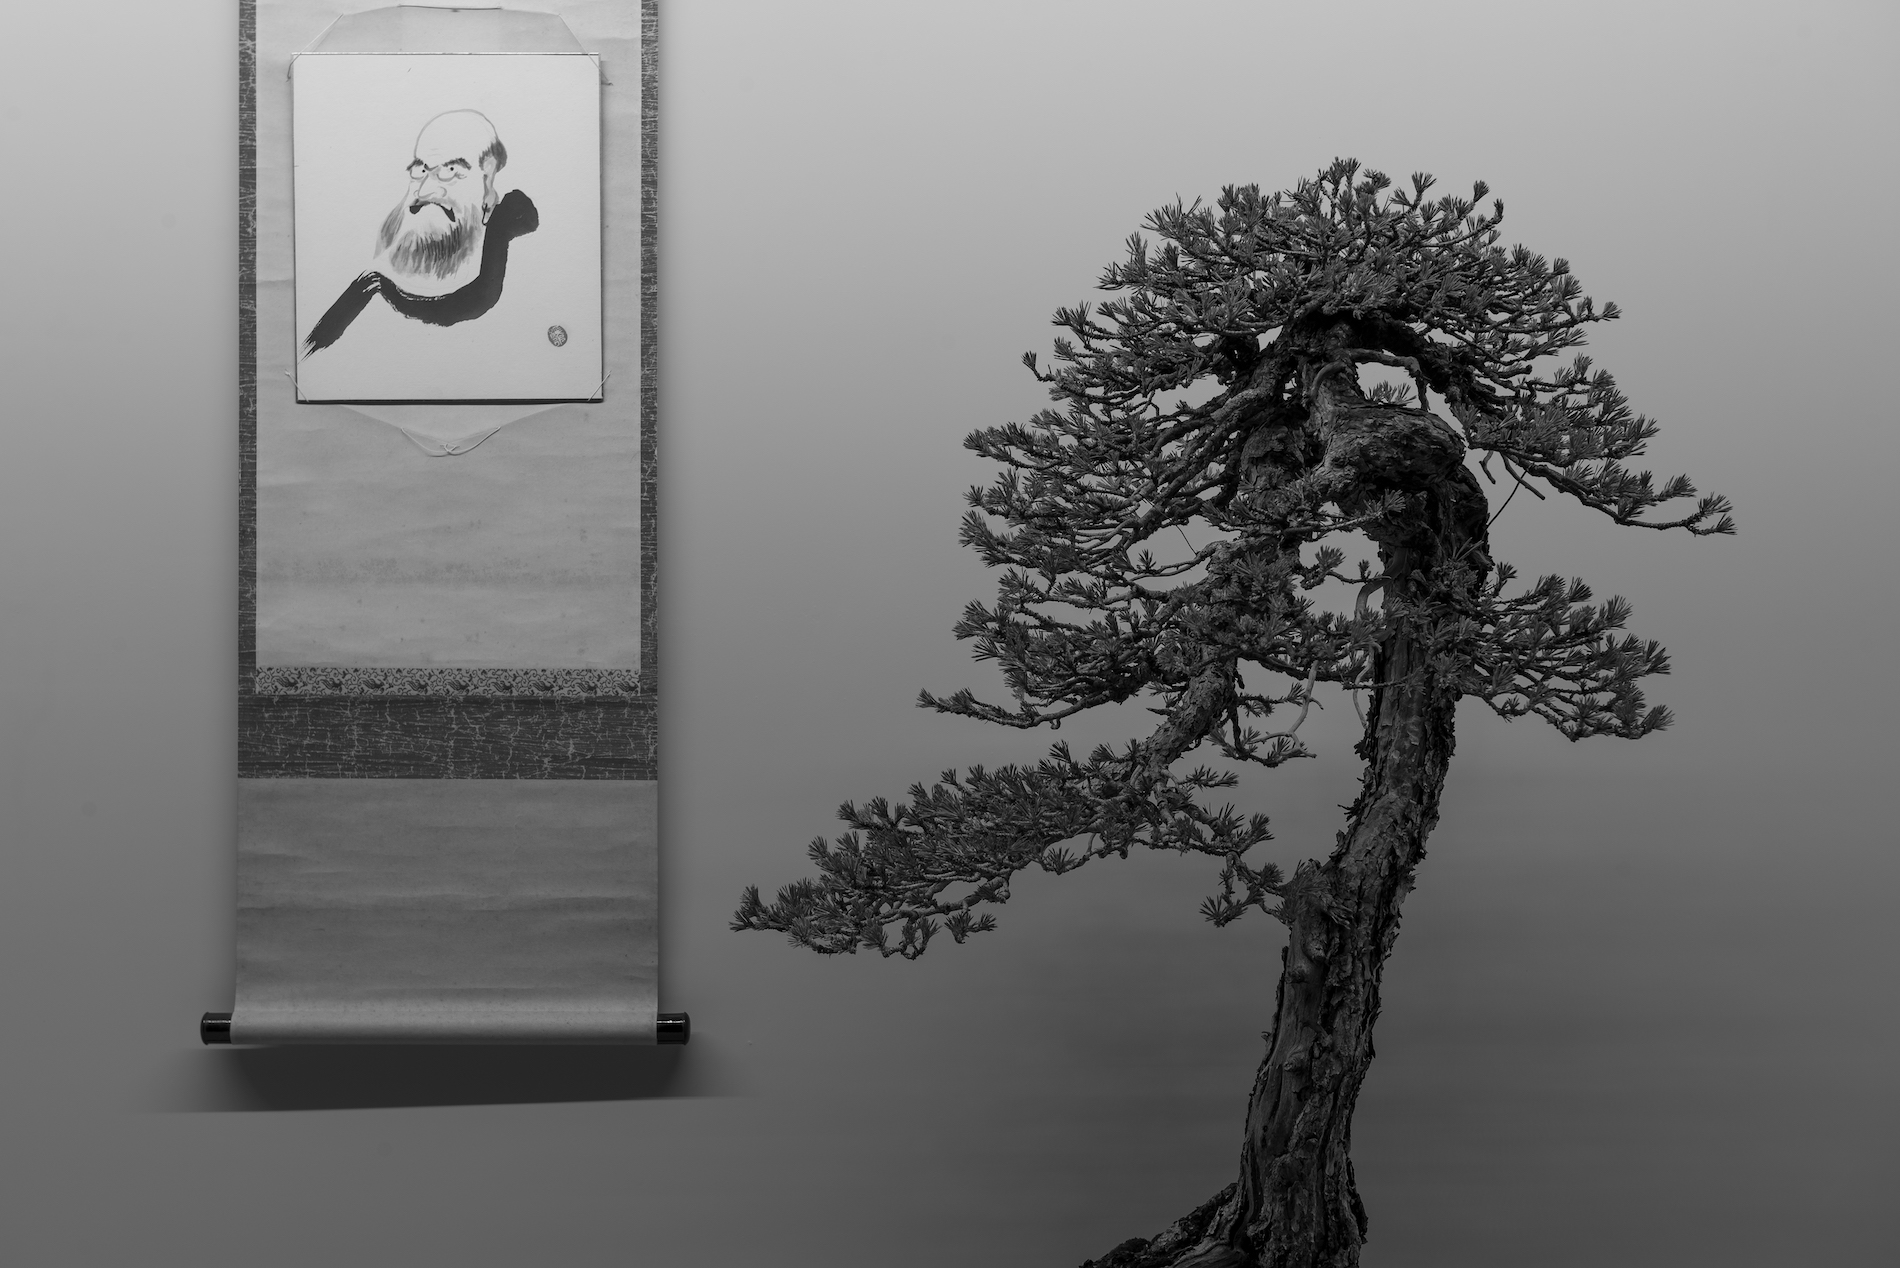 La poesía es un bonsai invisible, el bonsai es un poema visible